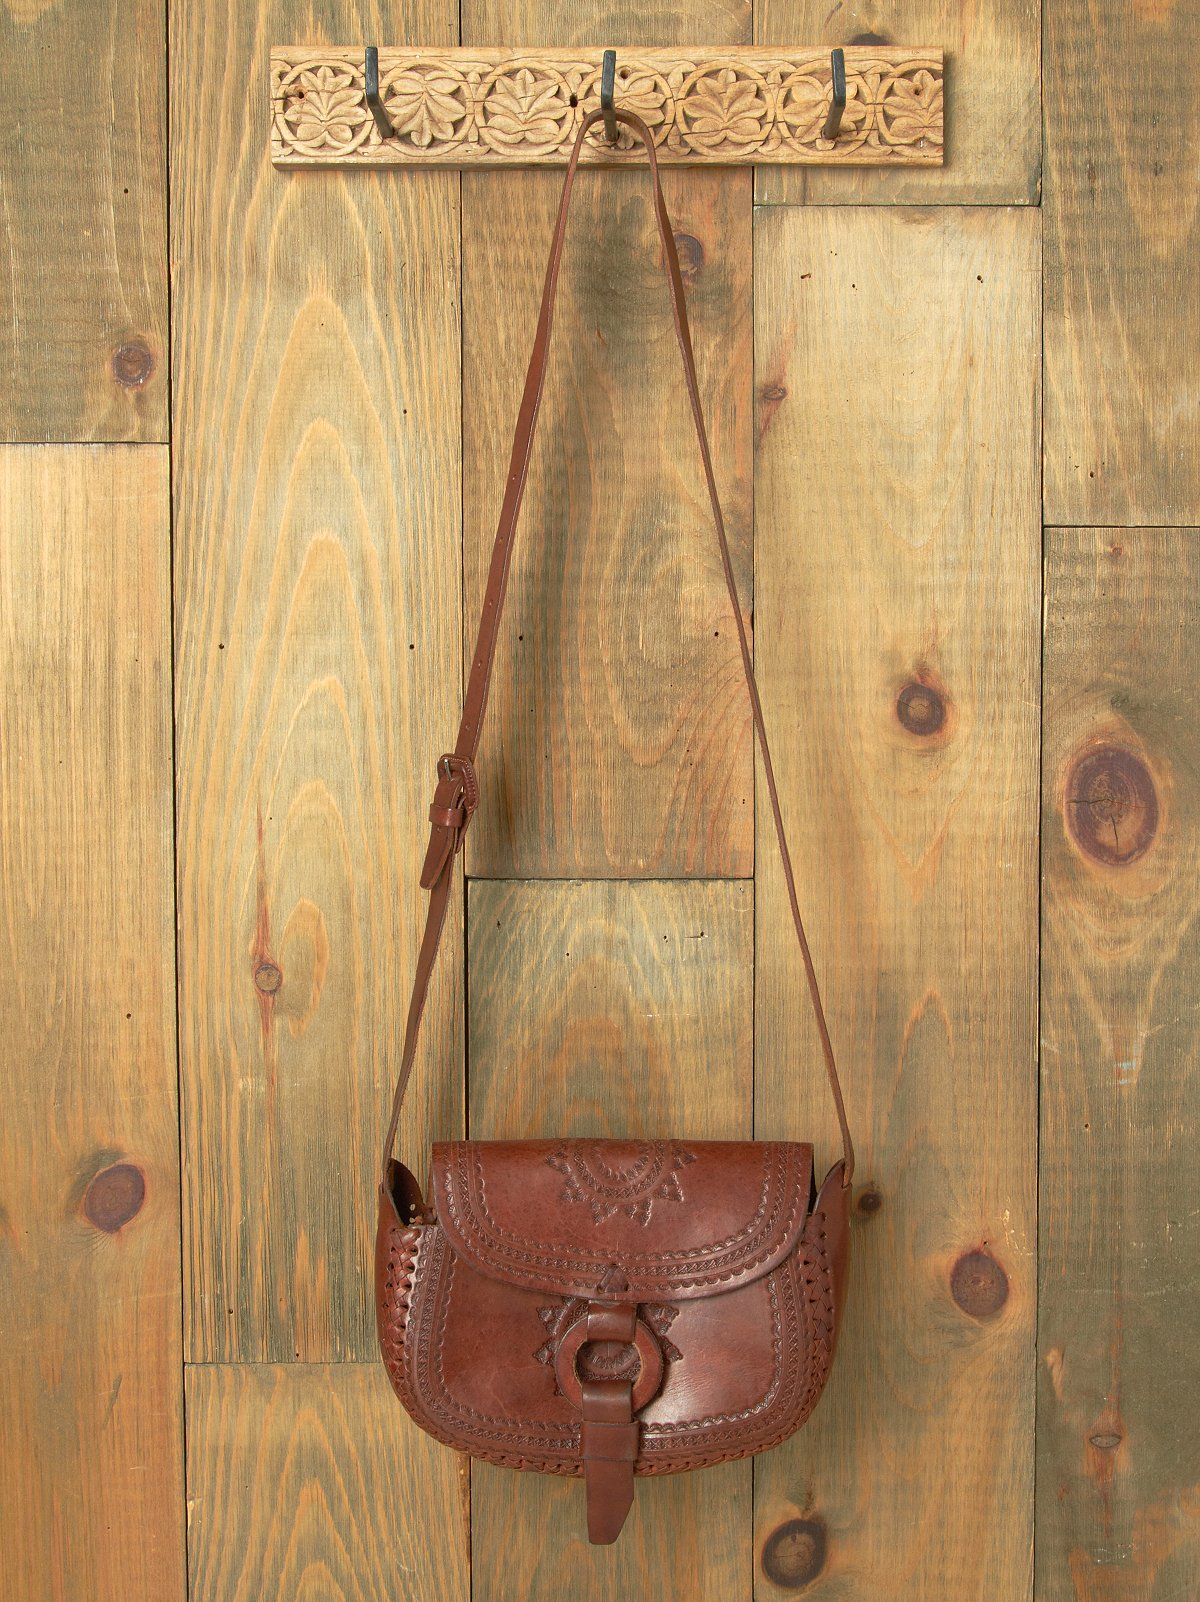 Molokai Tooled Leather Bag